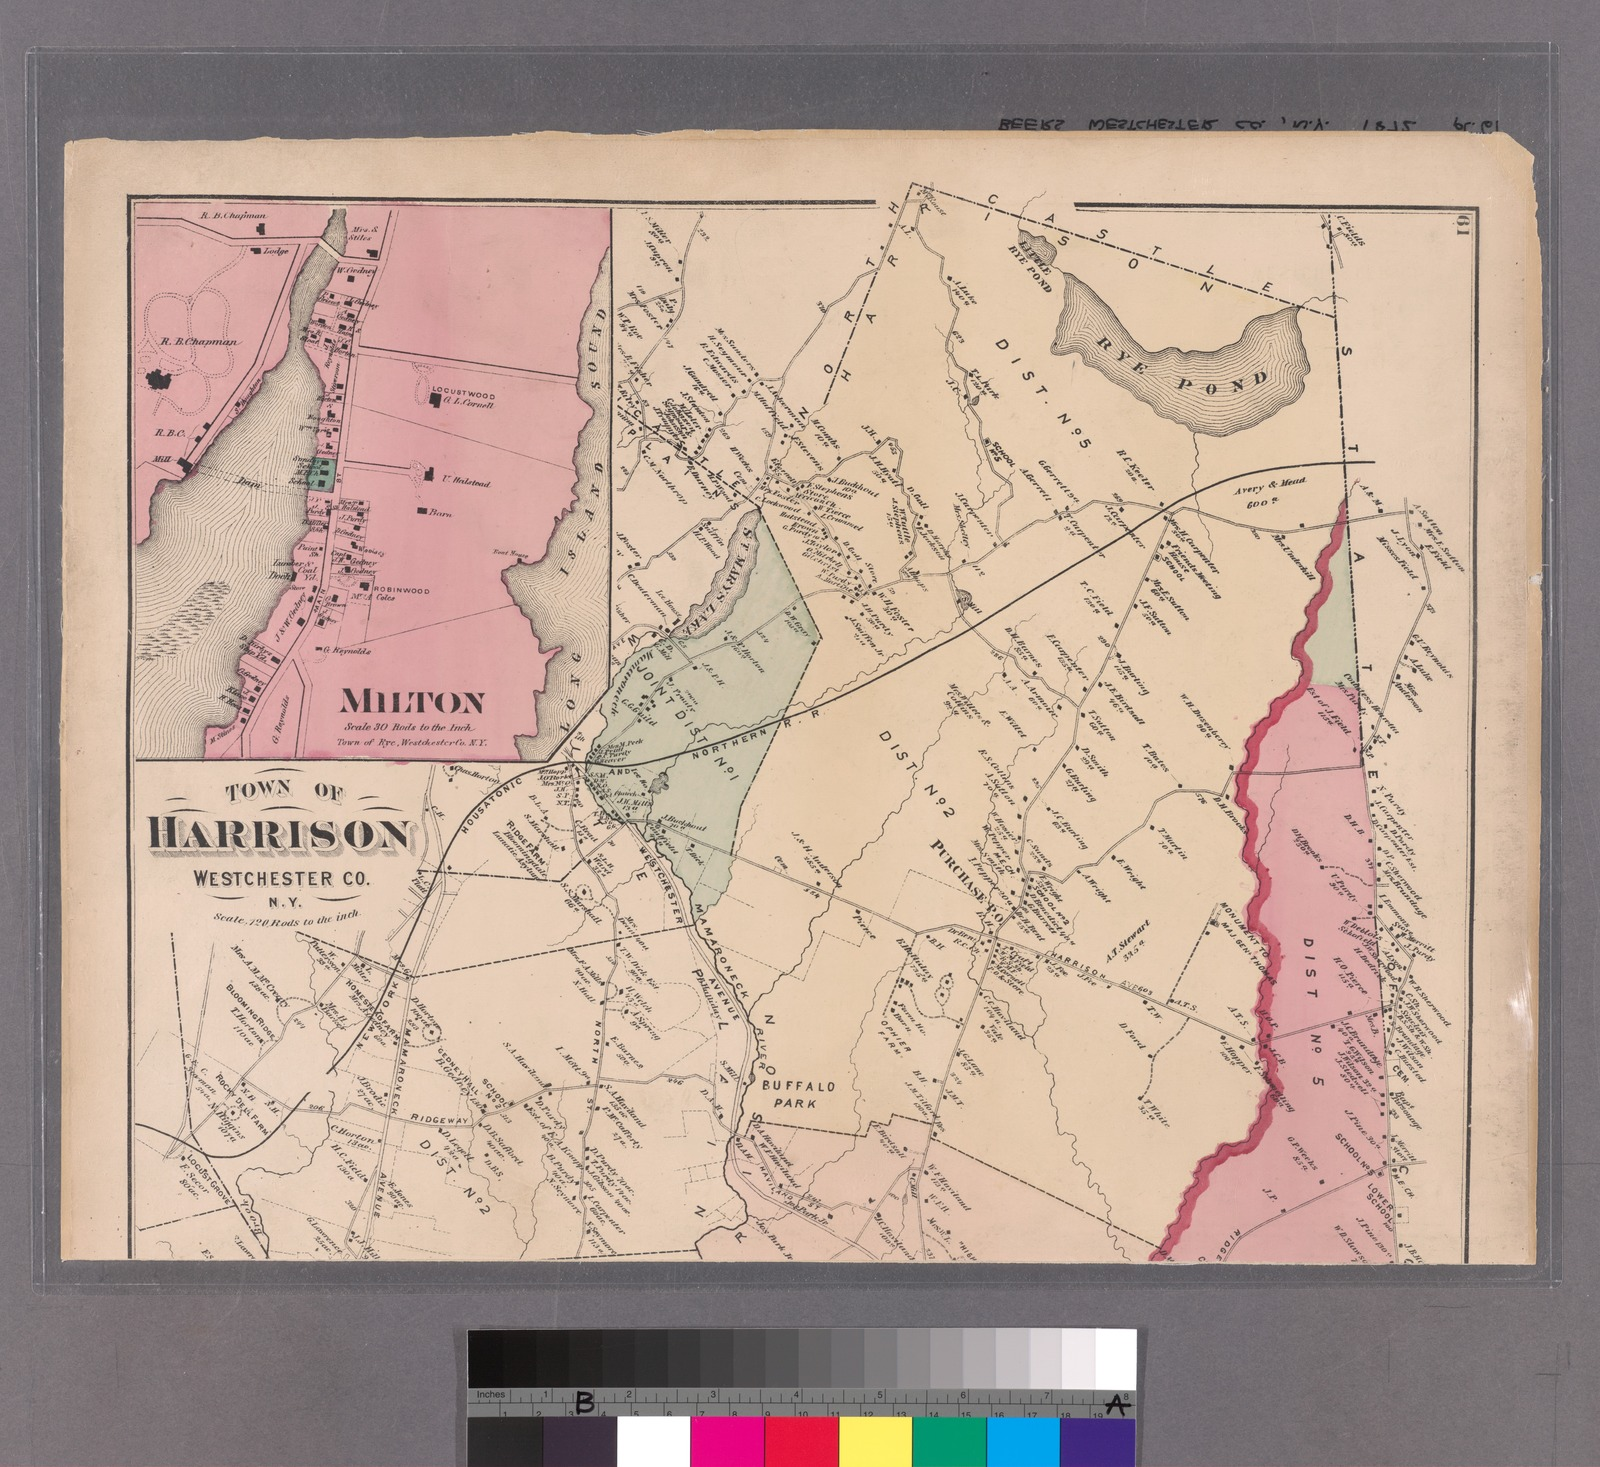 Plates 61 & 62: Town of Harrison, Westchester Co. N.Y. - Town of Rye, Westchester Co. N.Y.